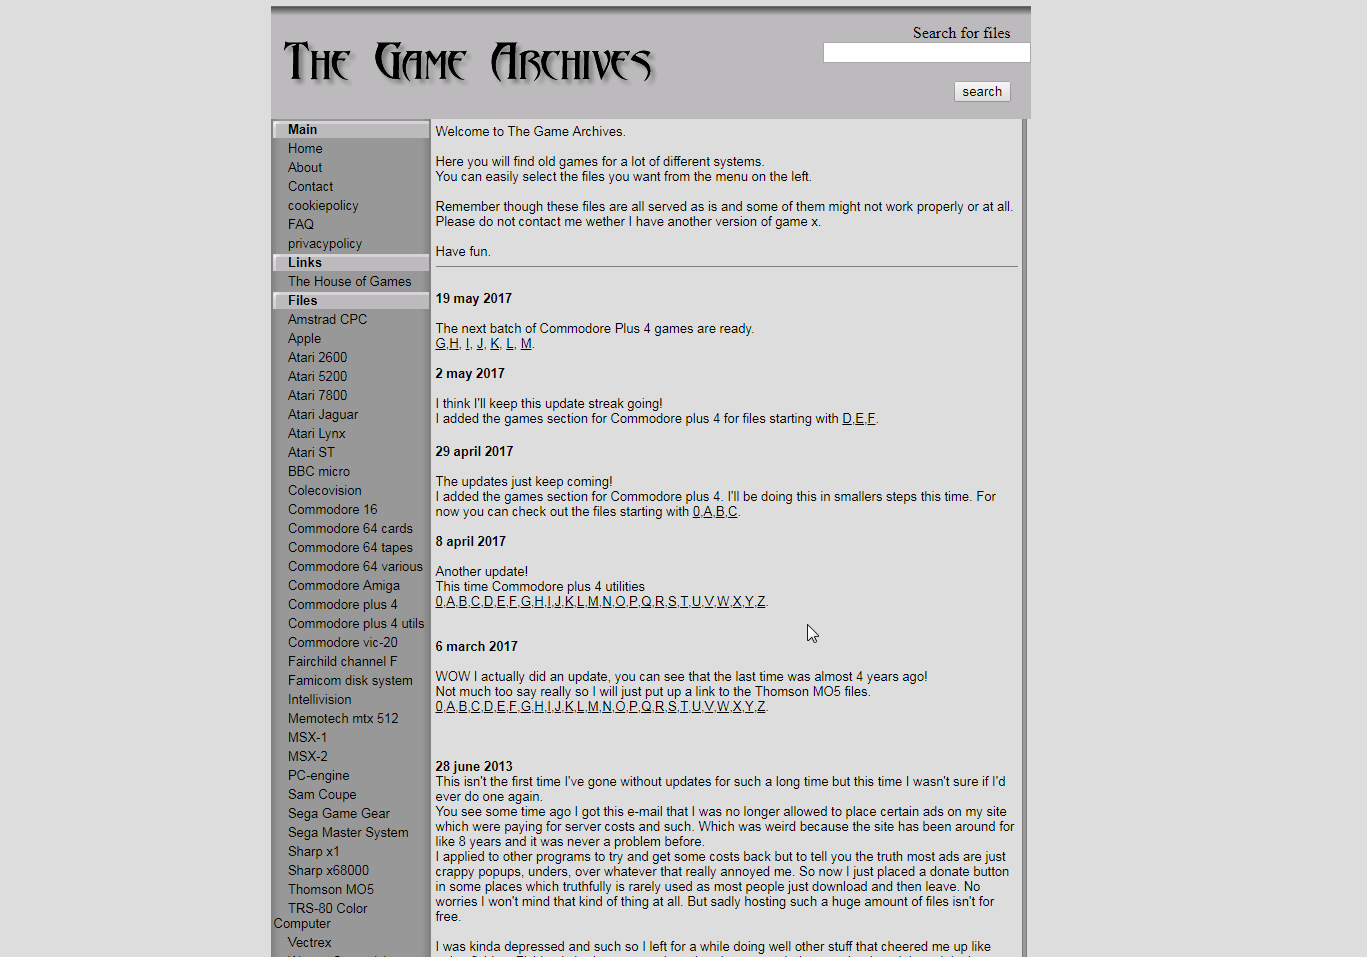 Screenshot of website The Games Archives